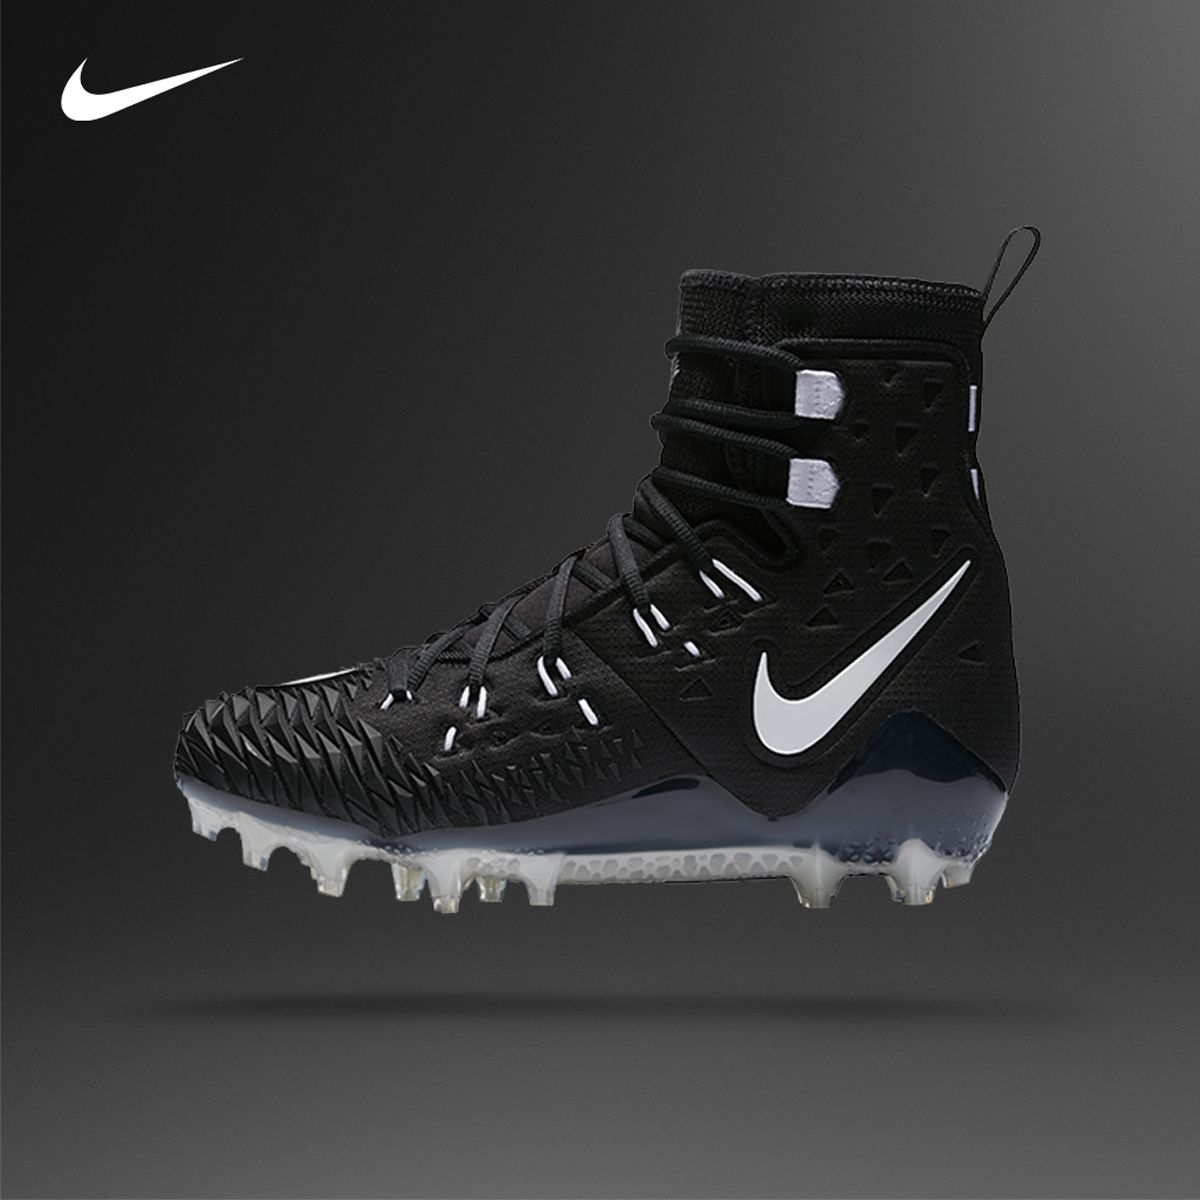 san francisco 2d799 8d6dd Nike Force Savage Elite TD Men's Football Cleats | Nike | Mens ...